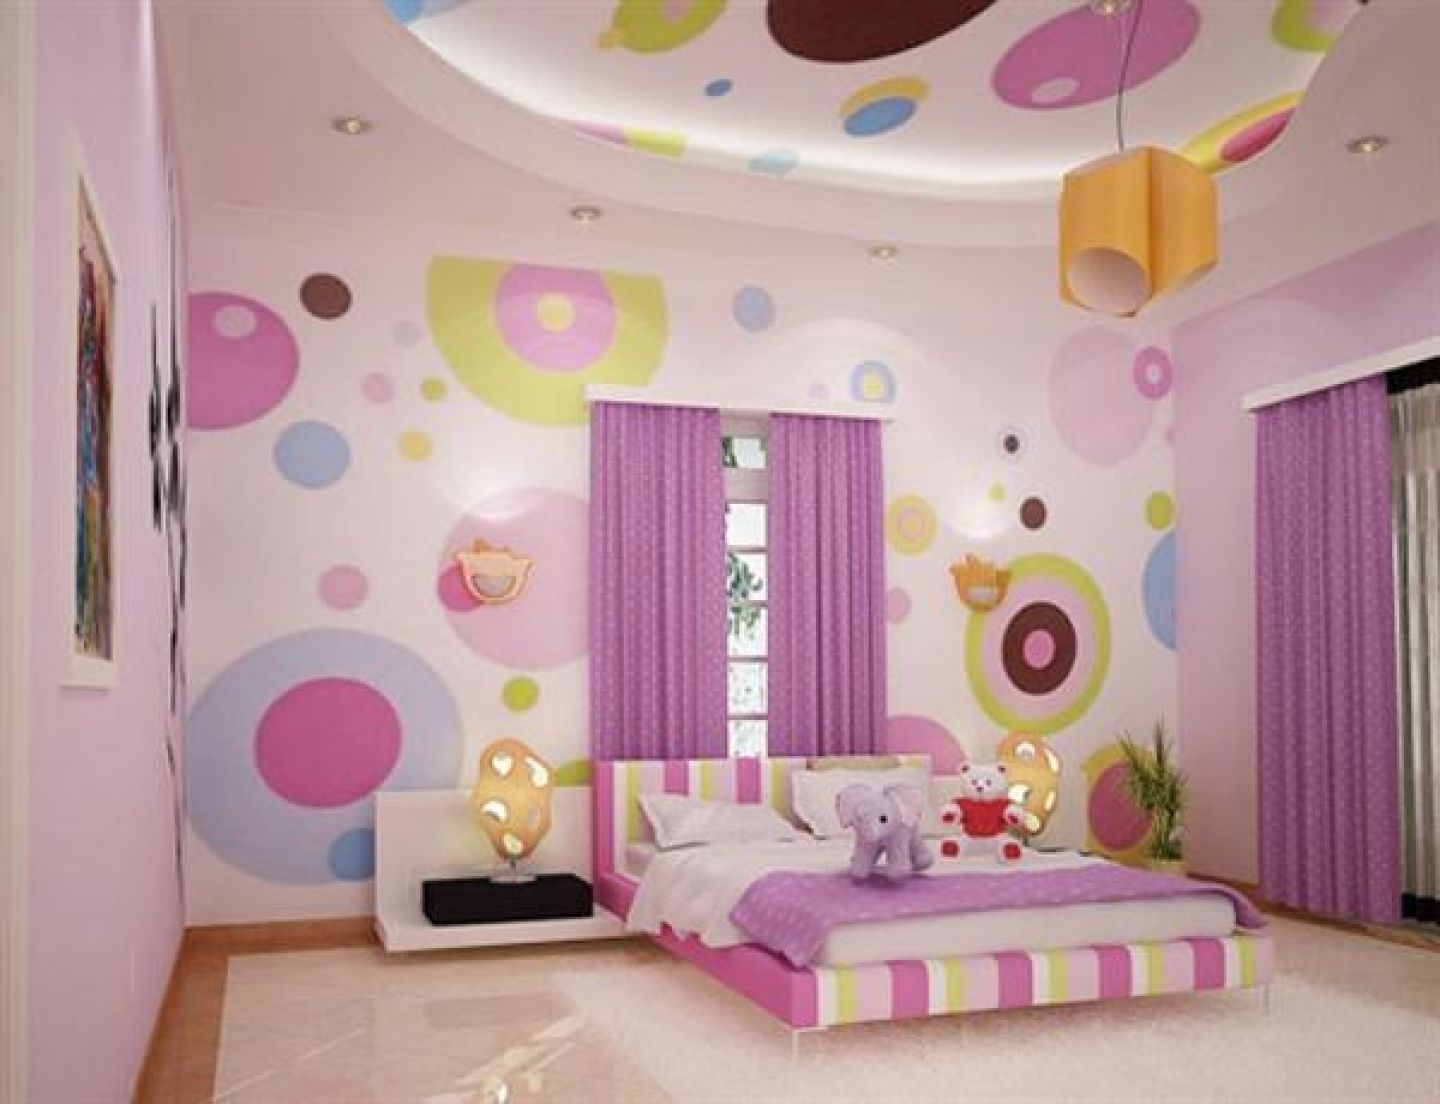 Paint Idea cheerful teen bedroom paint idea for girls with colorful circles